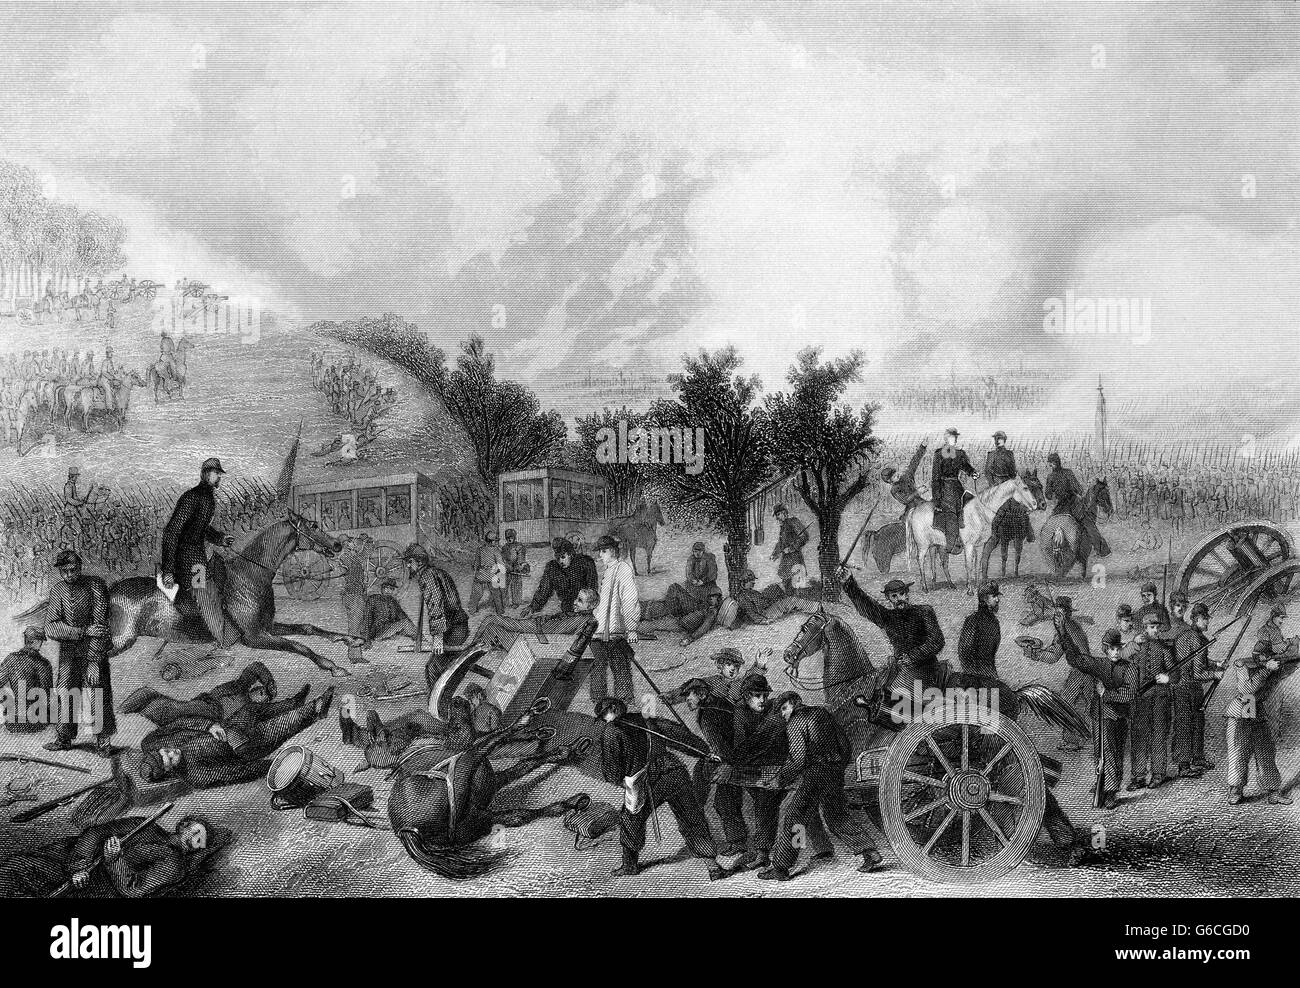 1860s JULY 1863 BATTLE OF GETTYSBURG - Stock Image